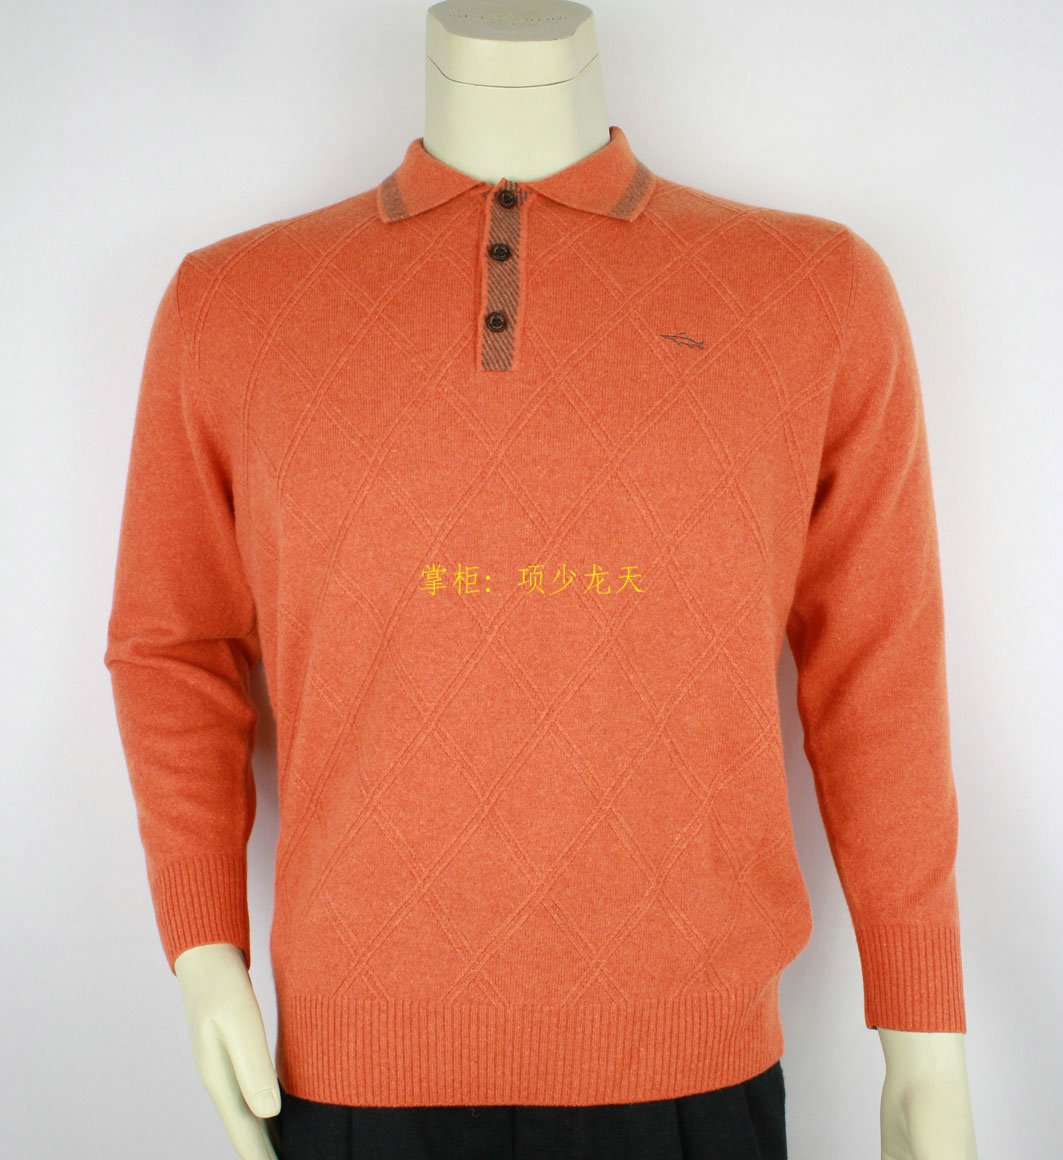 German shark cashmere sweater, RGZ5122 counter, authentic men's T-shirt, collar clearance, spike